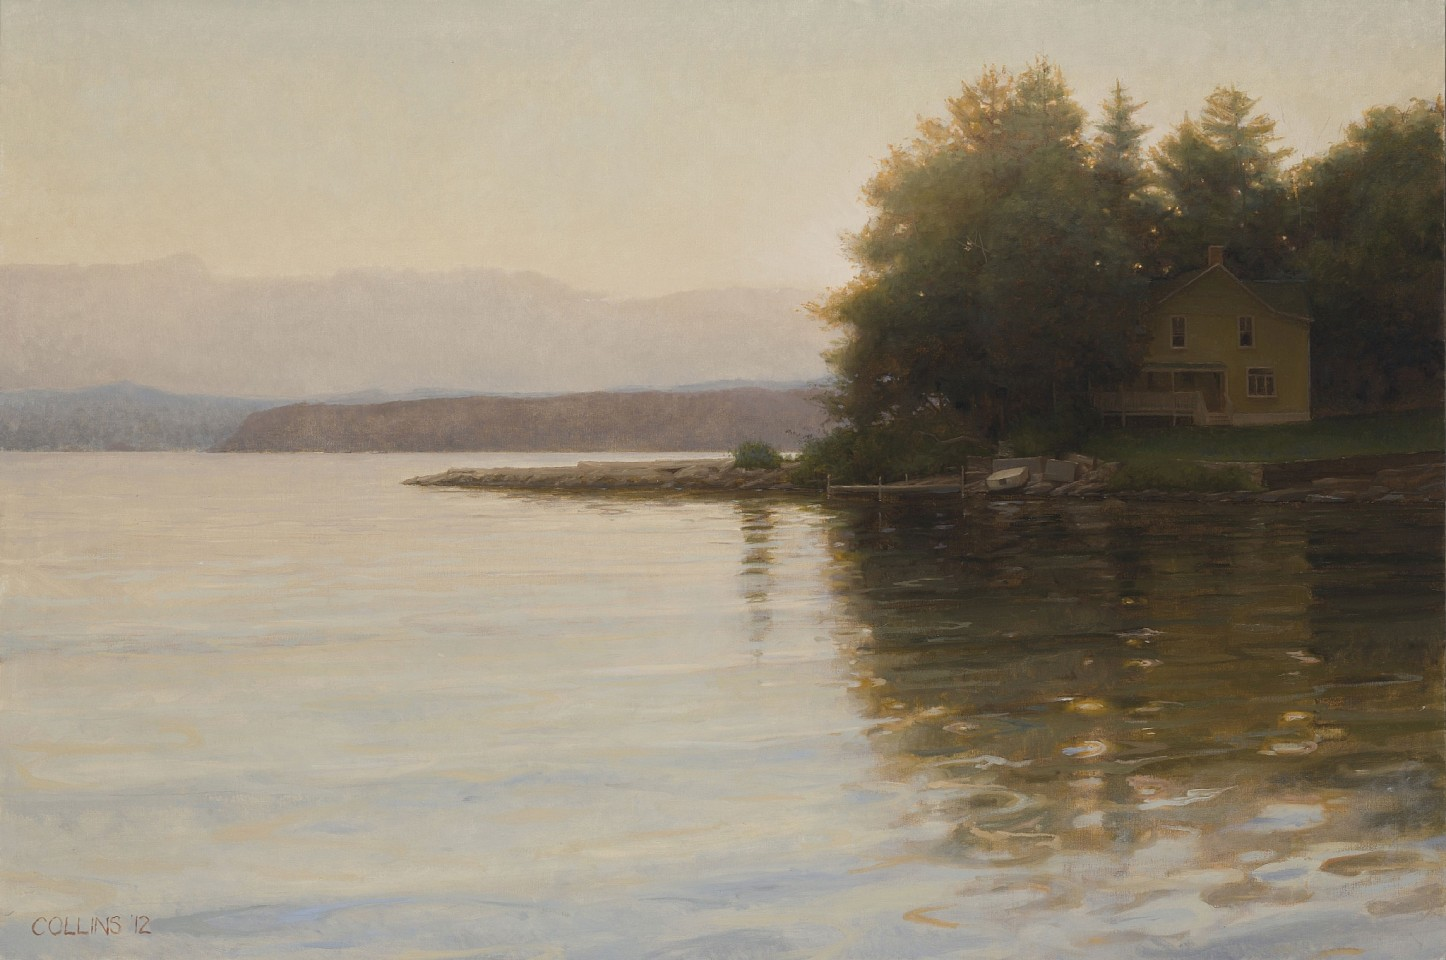 Jacob Collins ,   Yellow House on Thompson's Point at Twilight  ,  2012     oil on canvas ,  28 x 42 in. (71.1 x 106.7 cm)     AG7774